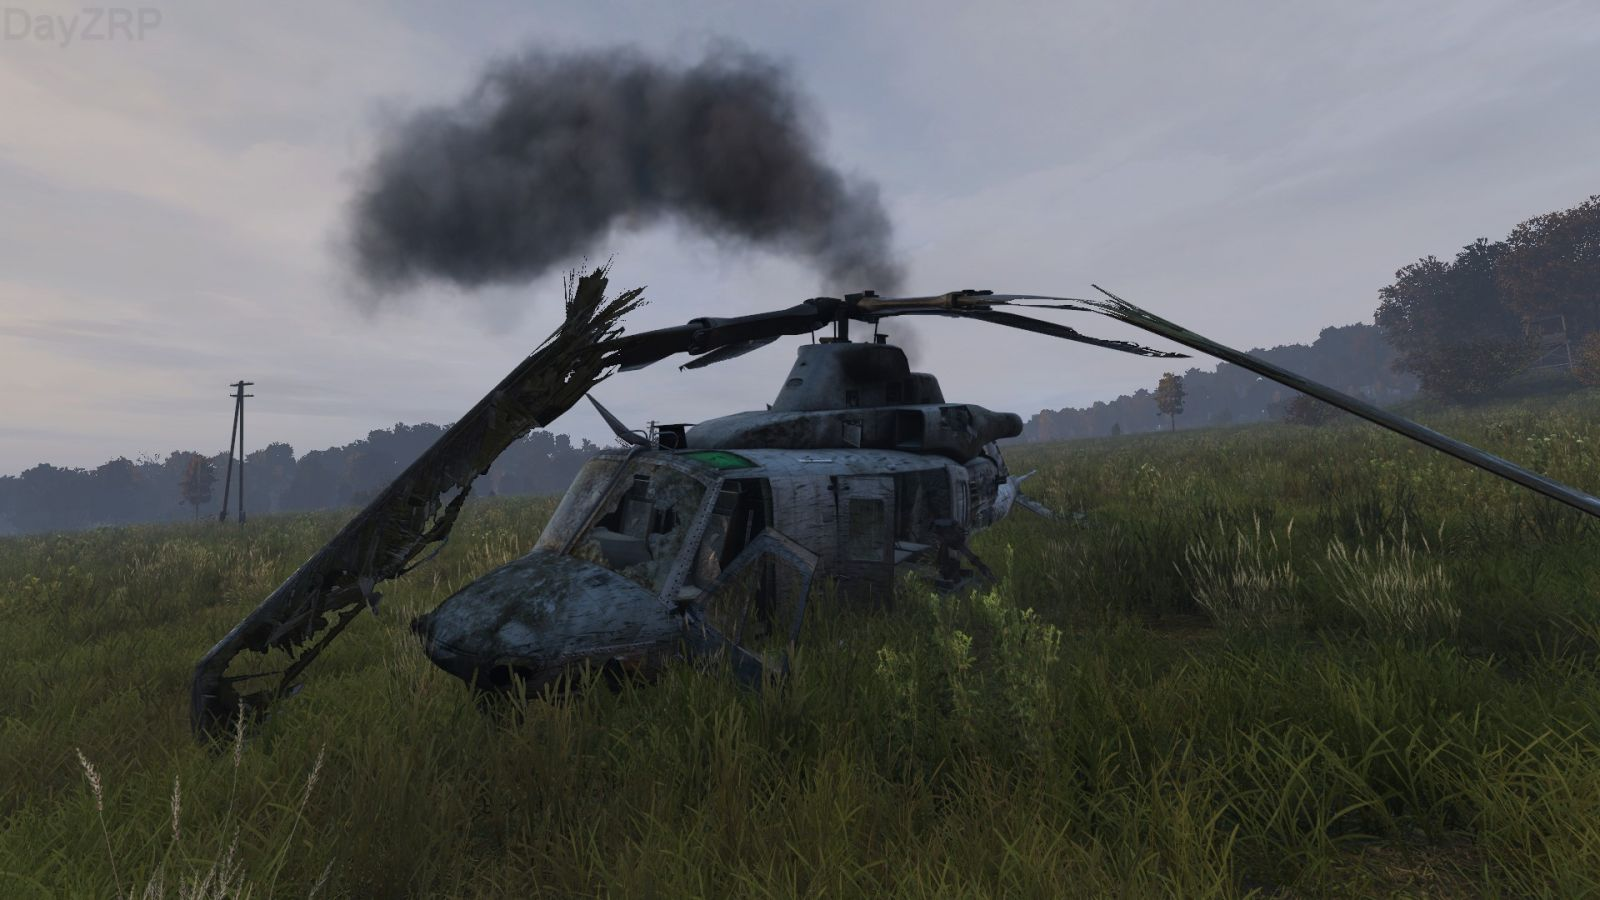 Heli Crash